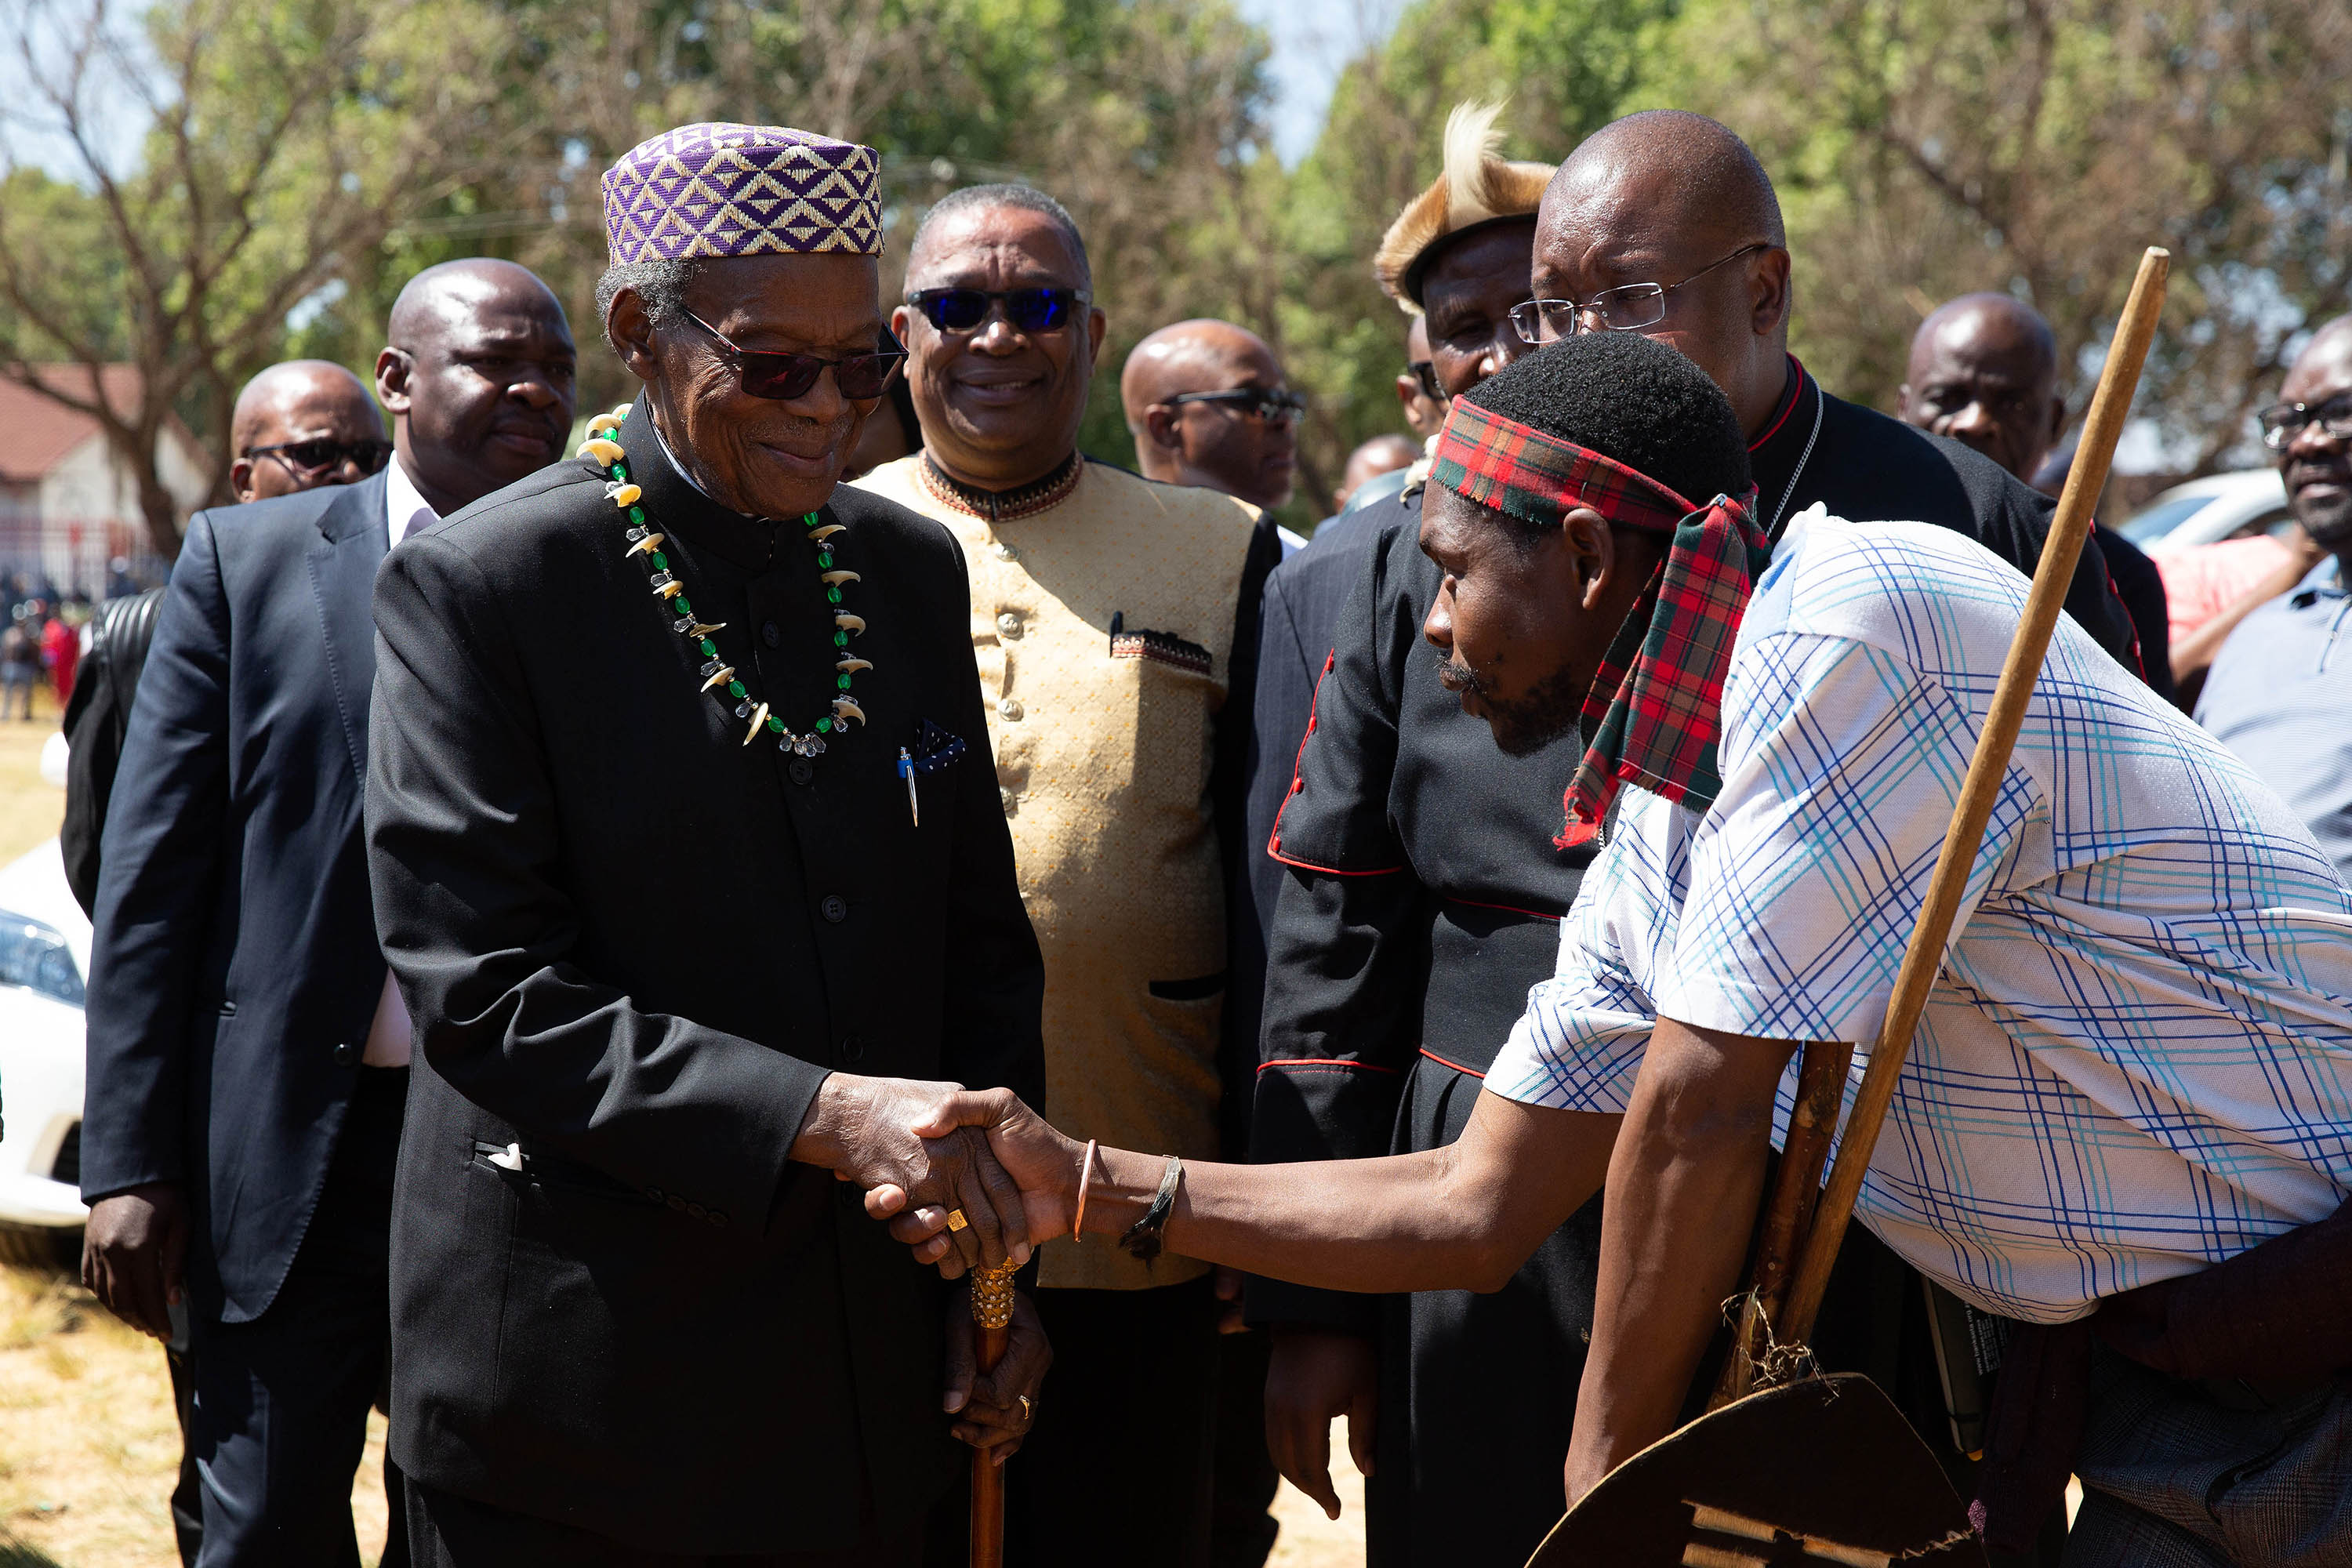 8 September 2019: Mangosuthu Buthelezi greeting a Joburg hostel dweller as he arrived at the gathering of men to discuss the violence taking place in the city. (Photograph by James Oatway)